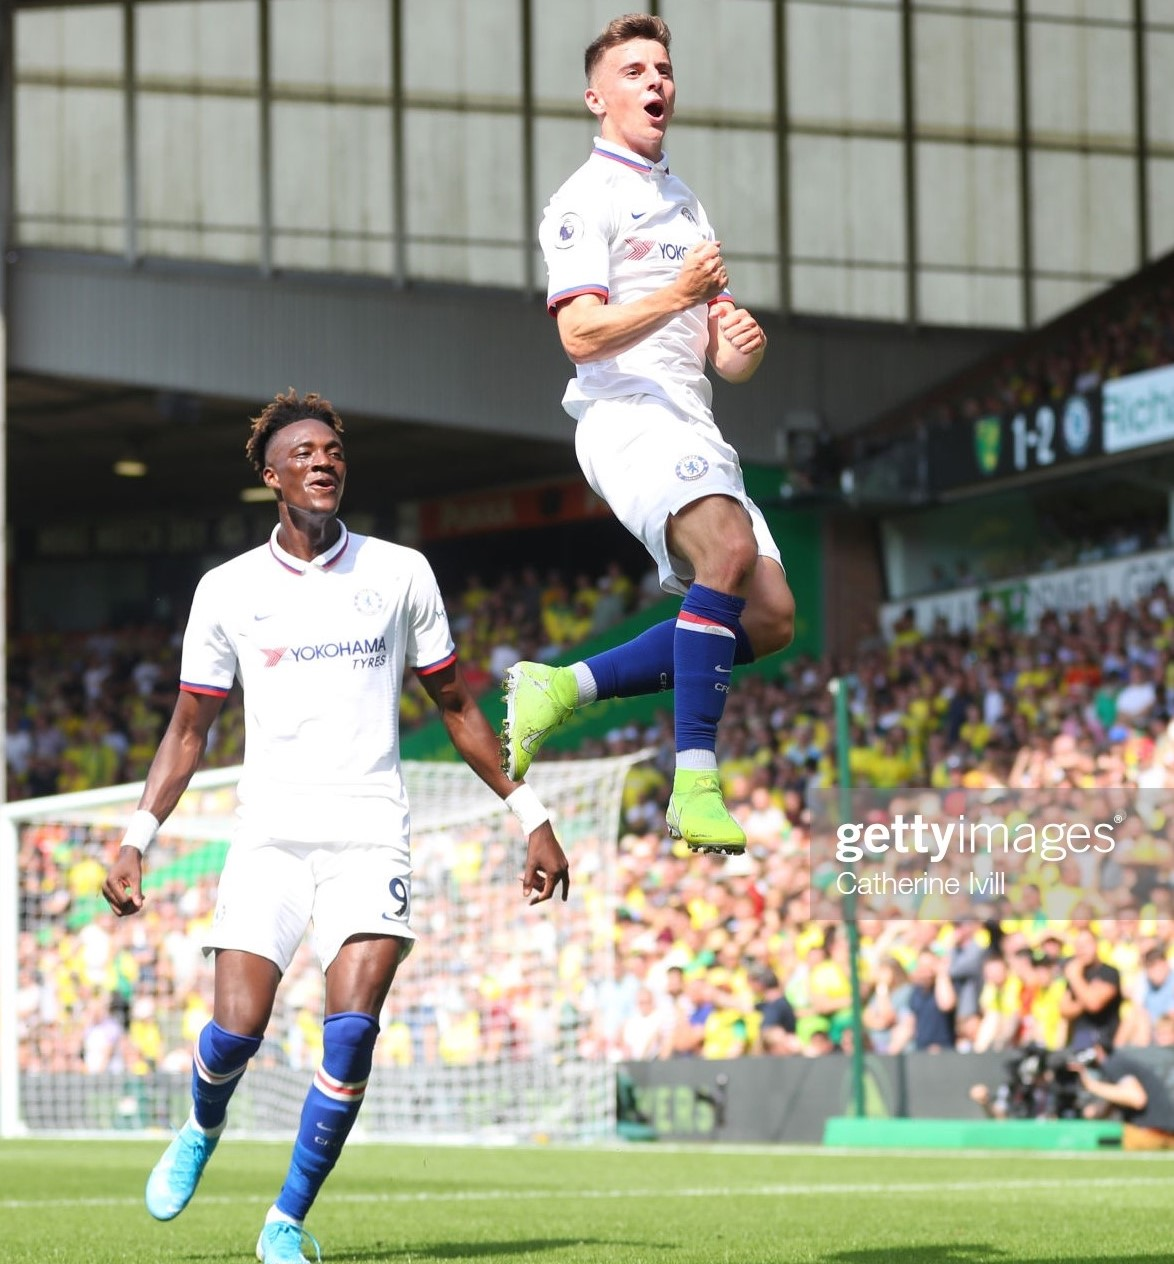 Mason Mount's Time is Now